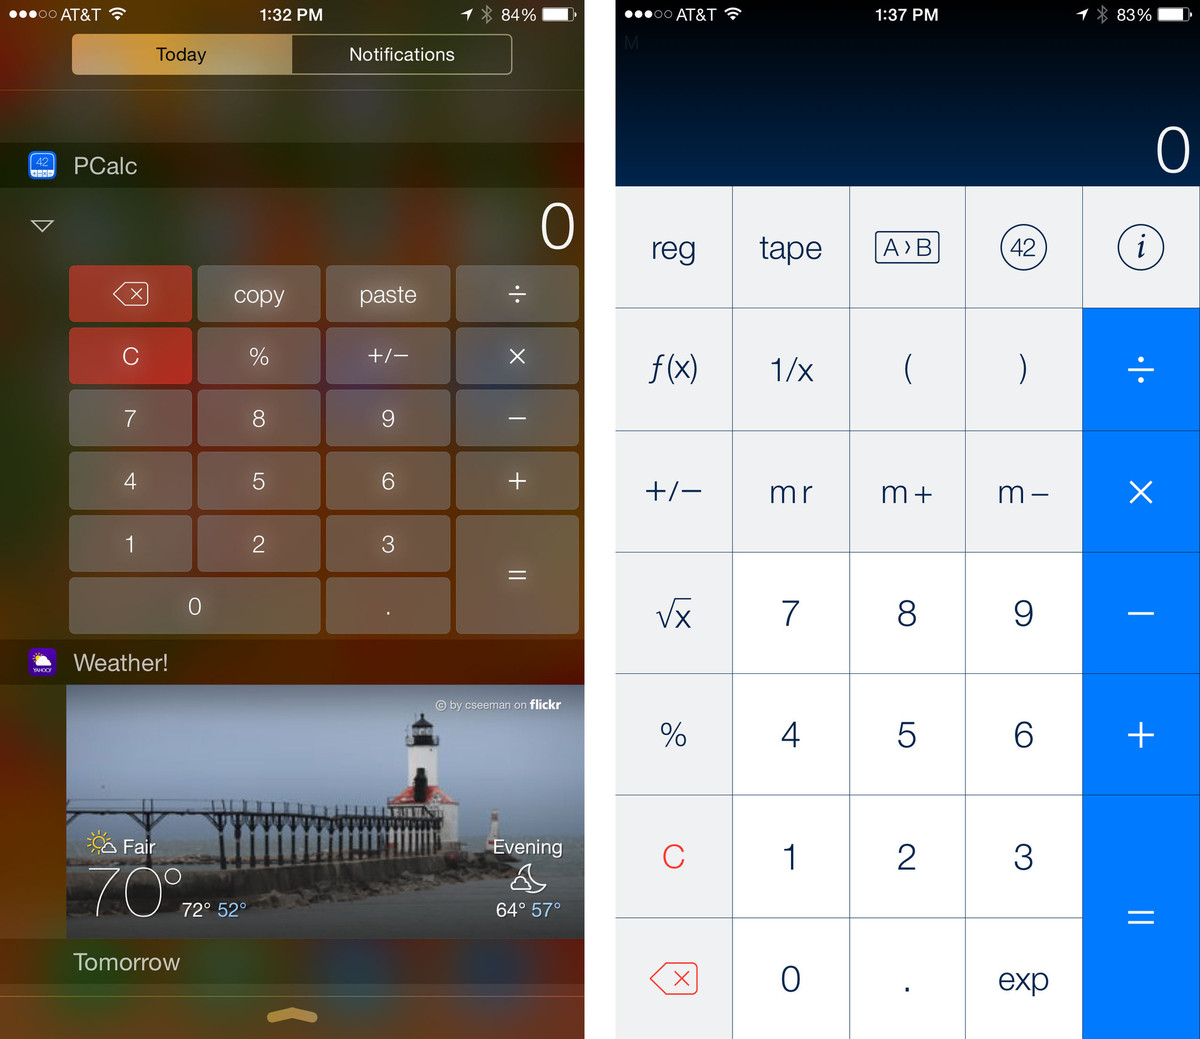 Best apps with Notification Center widgets for iOS 8: PCalc